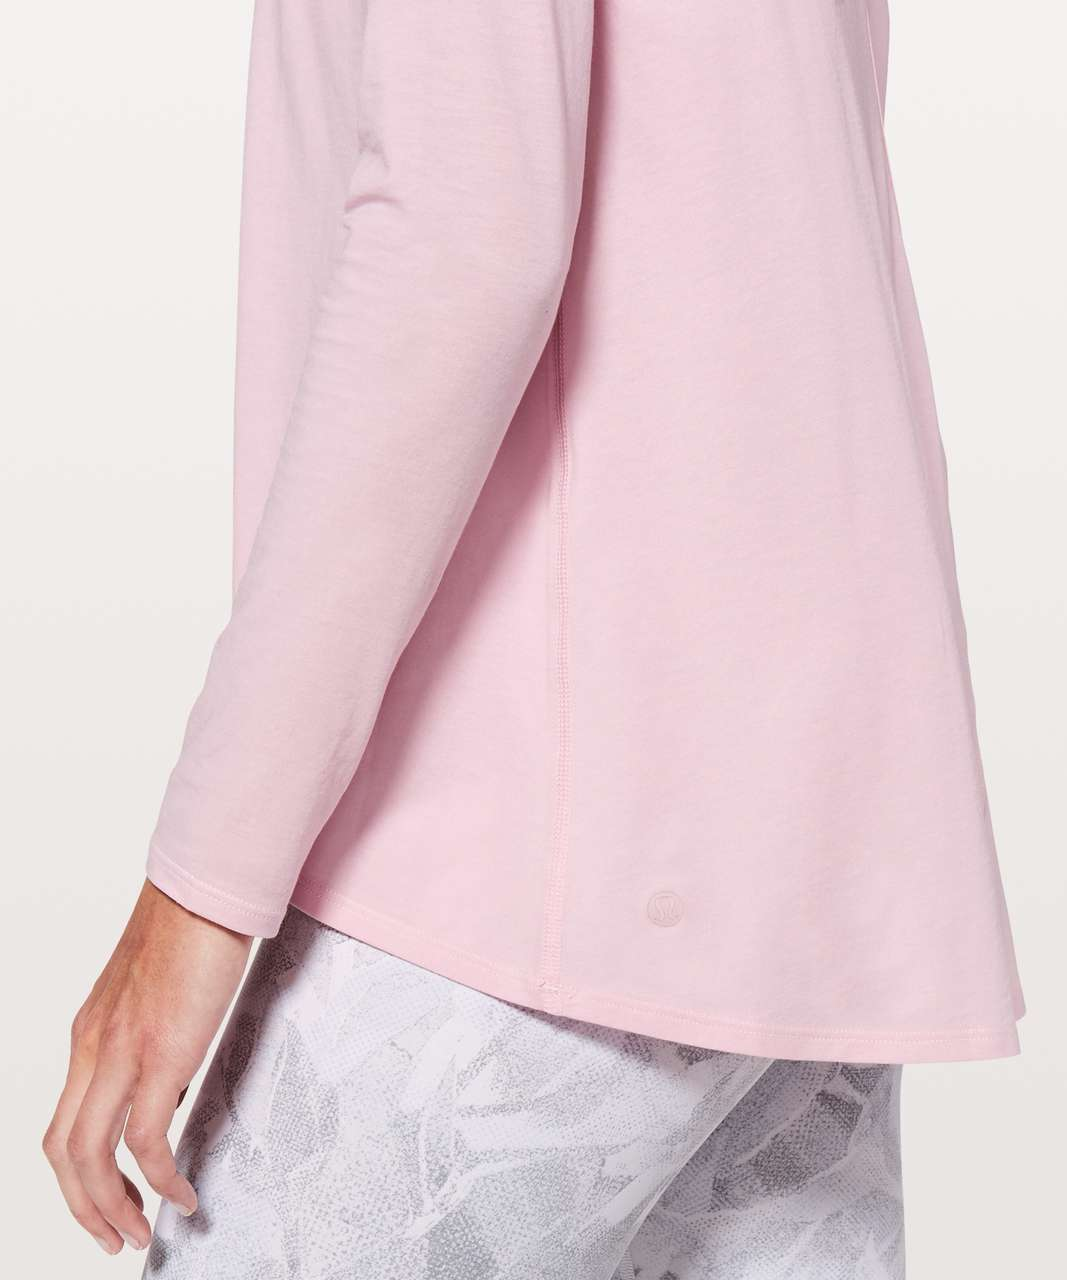 Lululemon Back Into It Long Sleeve - Petals